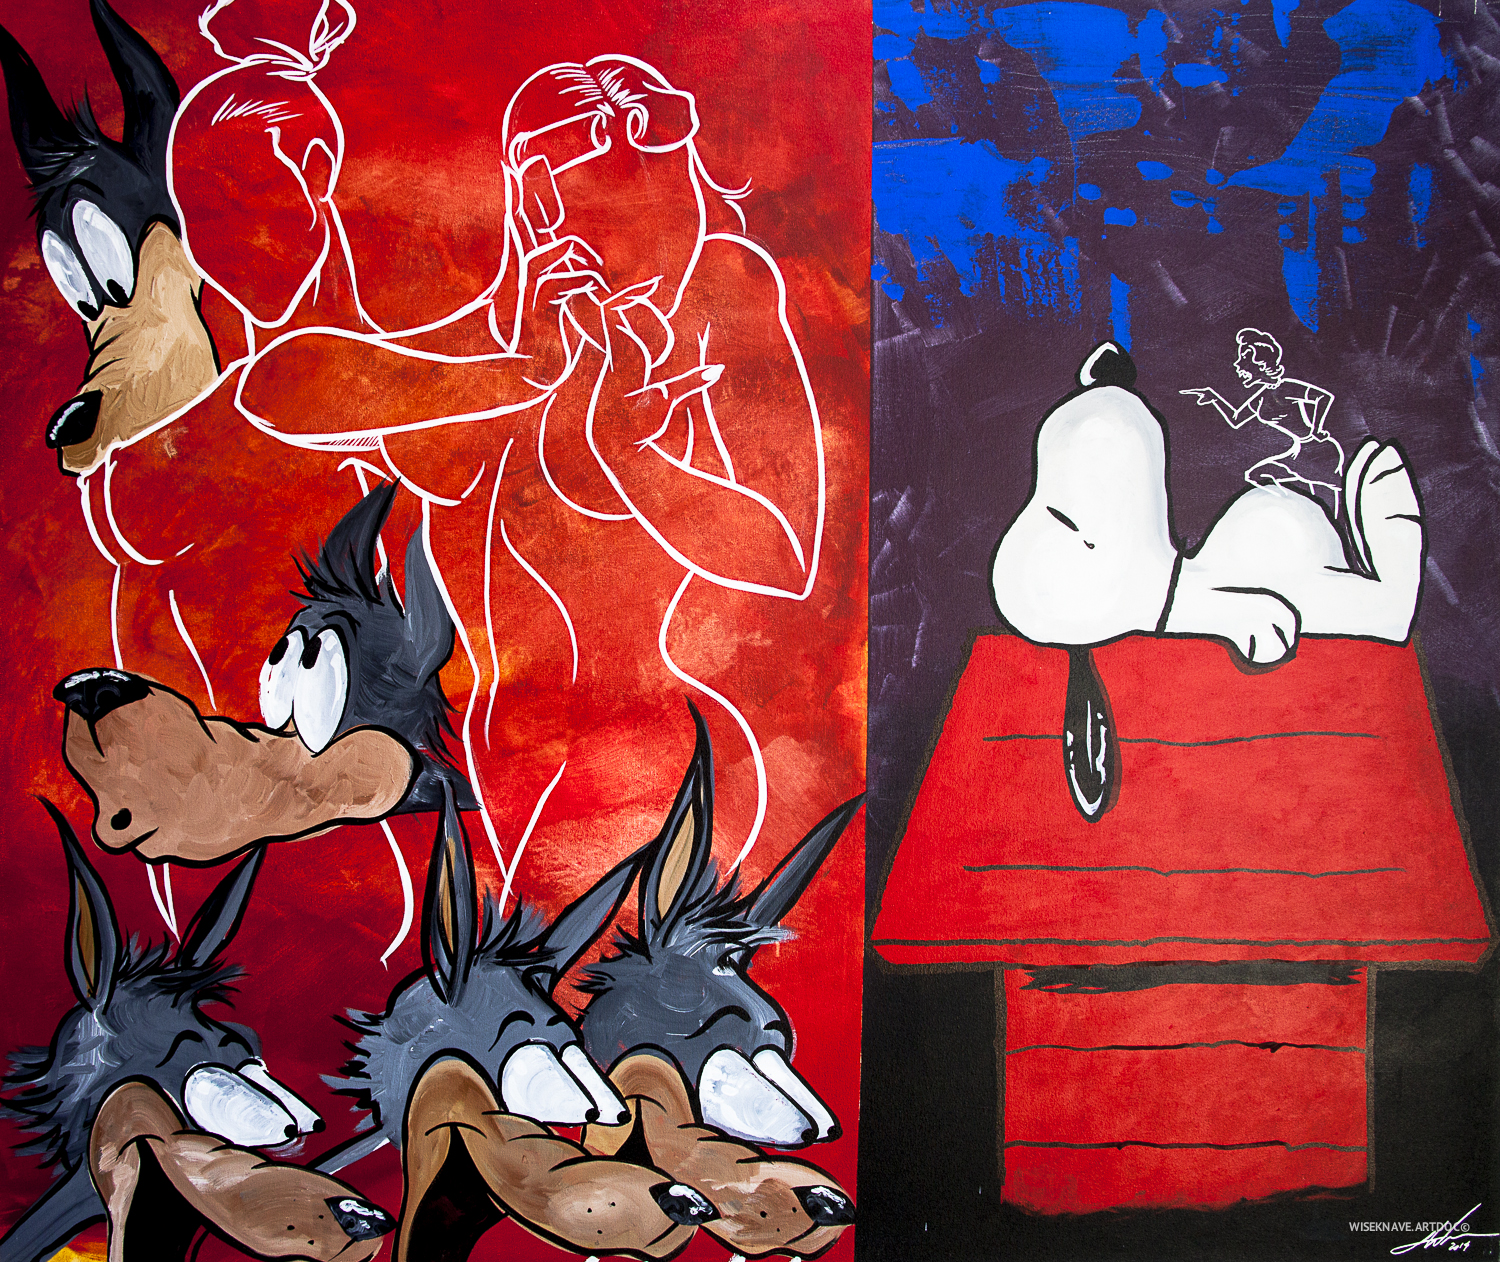 Artwork by Treason Gallery artist Jay West. Contemporary fine art in Pioneer Square Seattle, WA. Documentation by  WISEKNAVE